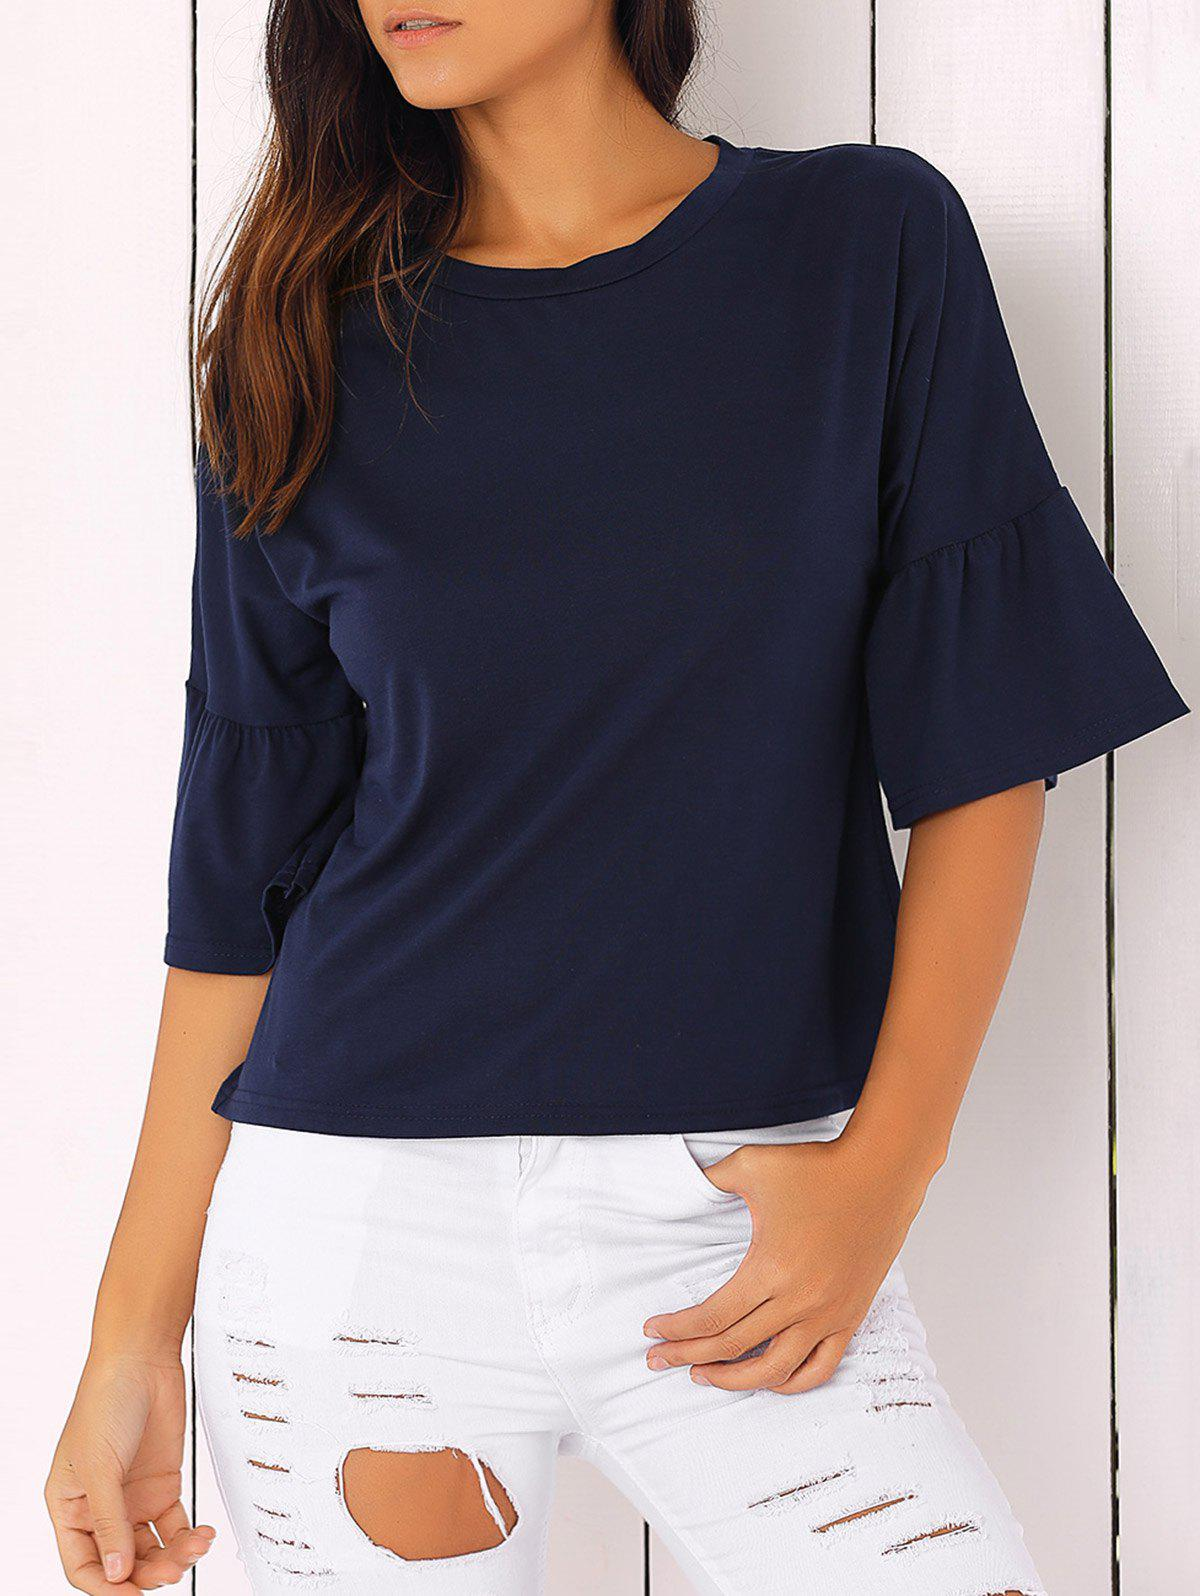 Bell Sleeve Solid Color T-Shirt - PURPLISH BLUE L